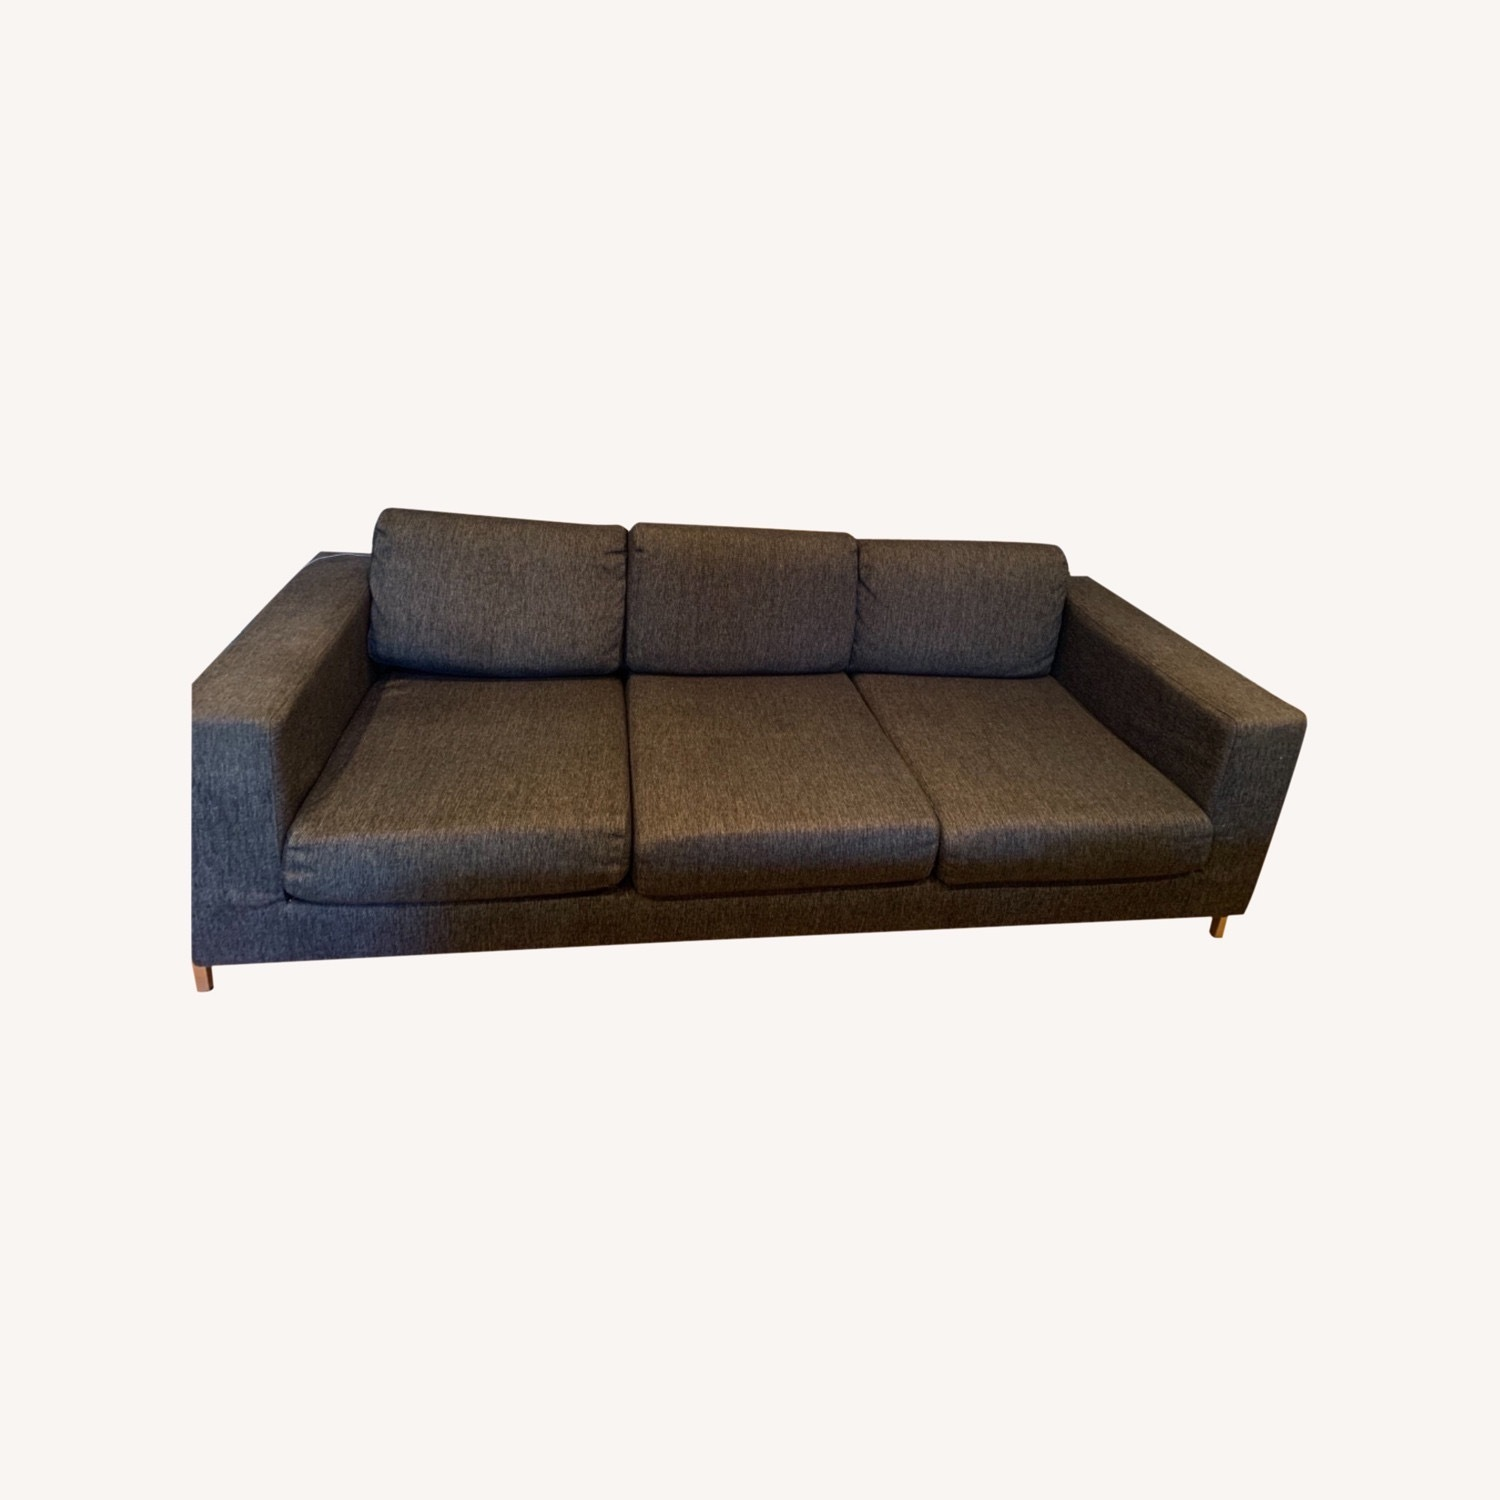 Gus Modern Gray Couch - image-19